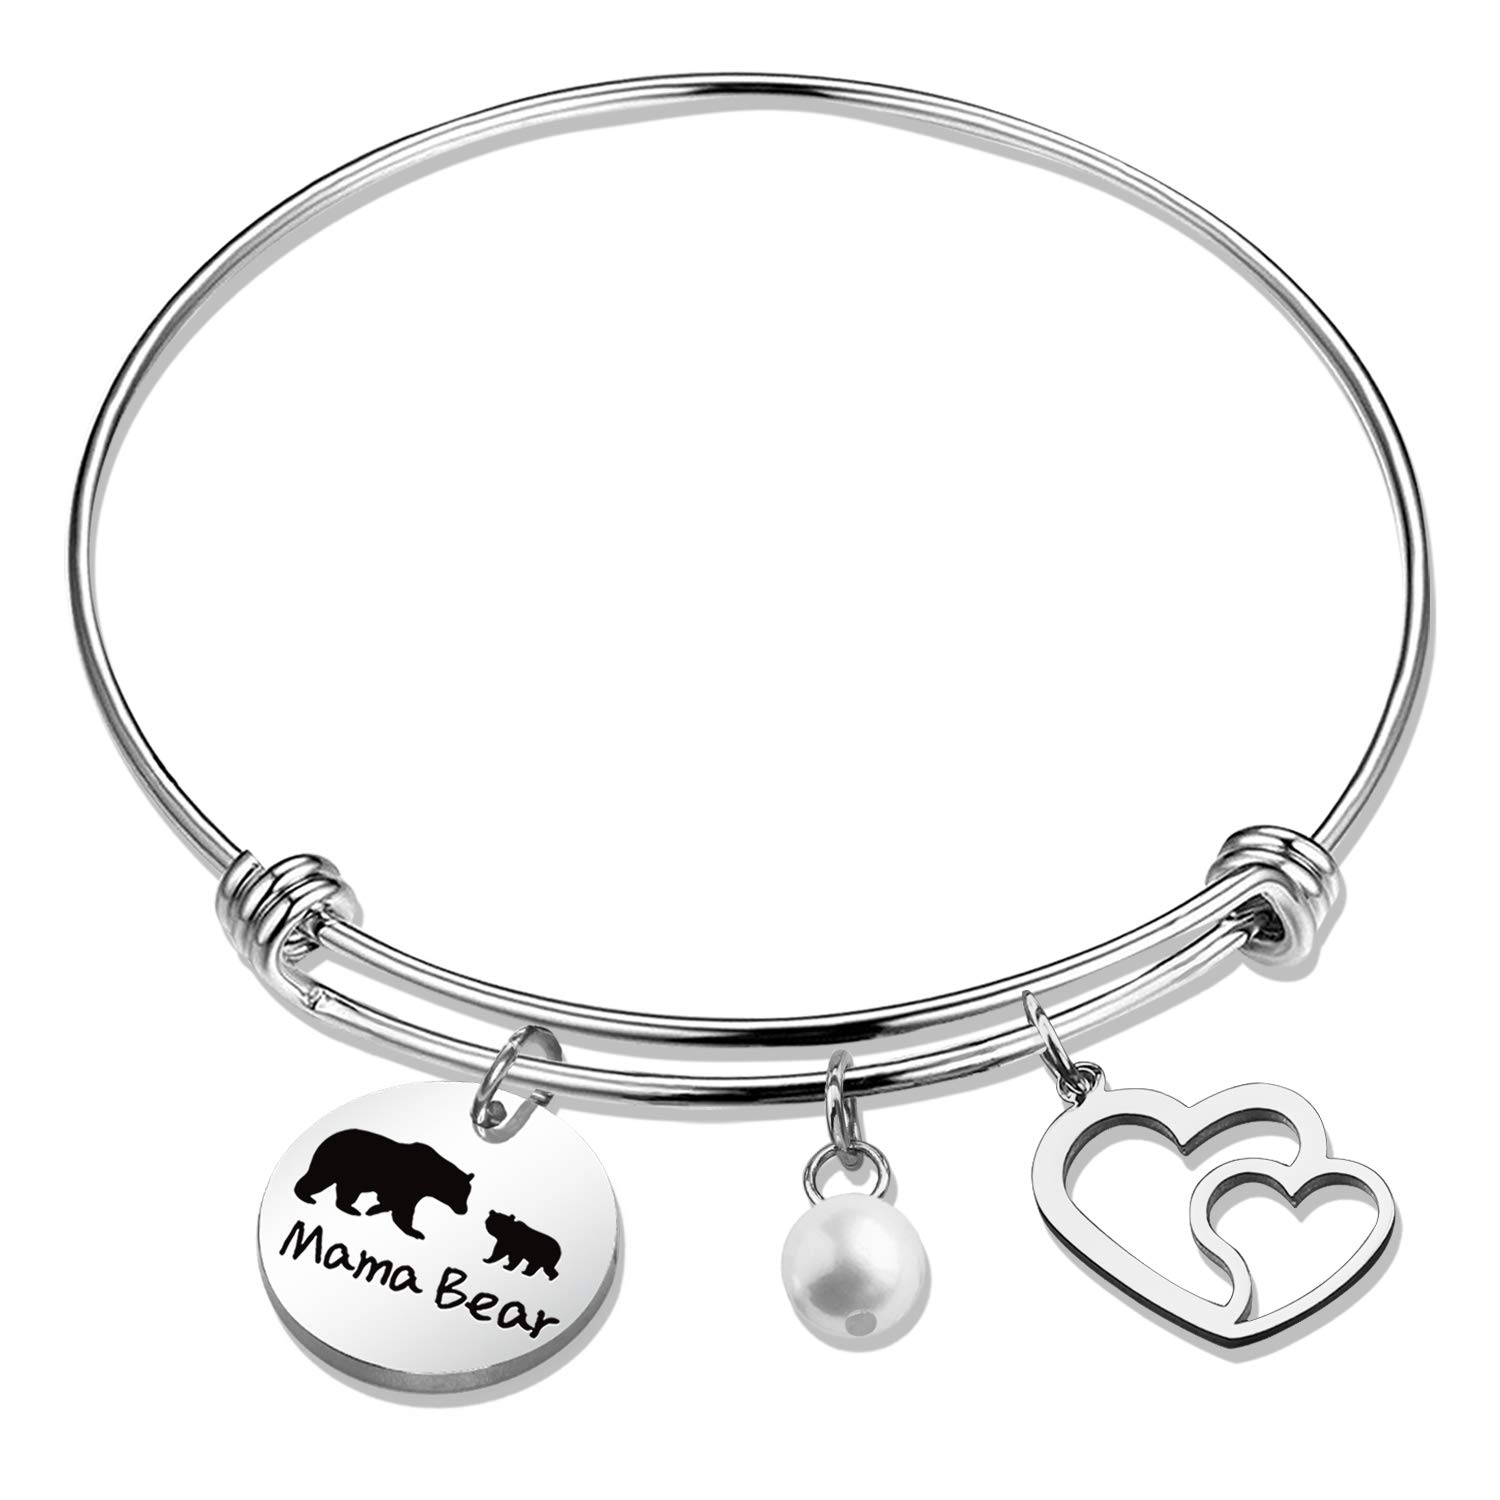 SIDIMELO Inspirational Gifts Mom Bracelet Mama Bear Bracelet Sweet Family Personalized Mama Bear Jewelry for Mother Wife Grandma Momma Baby Bears Cubs Gifts